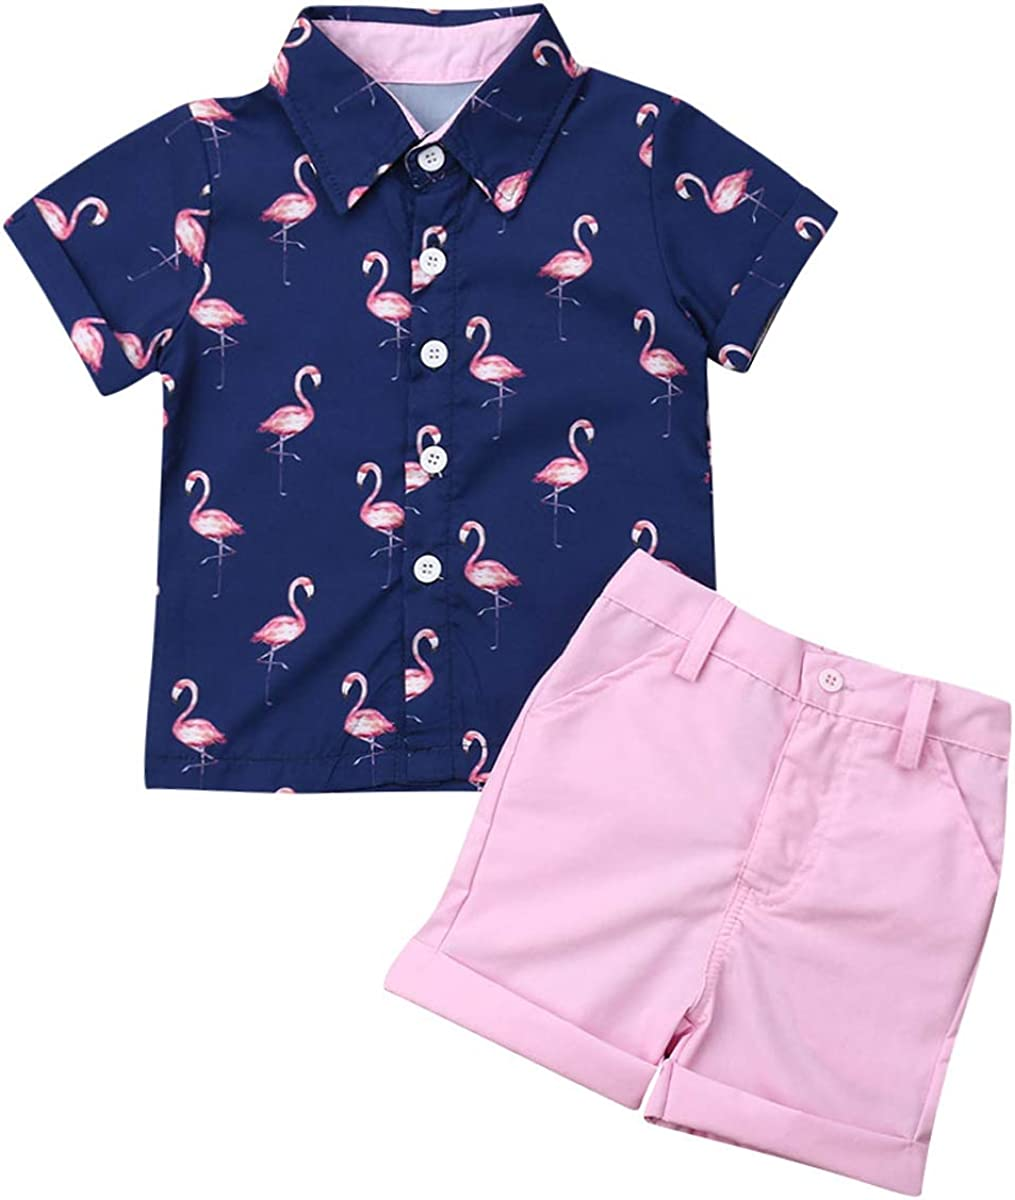 Solid Shorts Pants Flamingo t-Shirt + Pink Shorts Navy, 4-5 T Kuriozud Toddler Baby Boy Summer Outfits Set Gentleman Button-Down Short Sleeve Shirt Blouse Tops